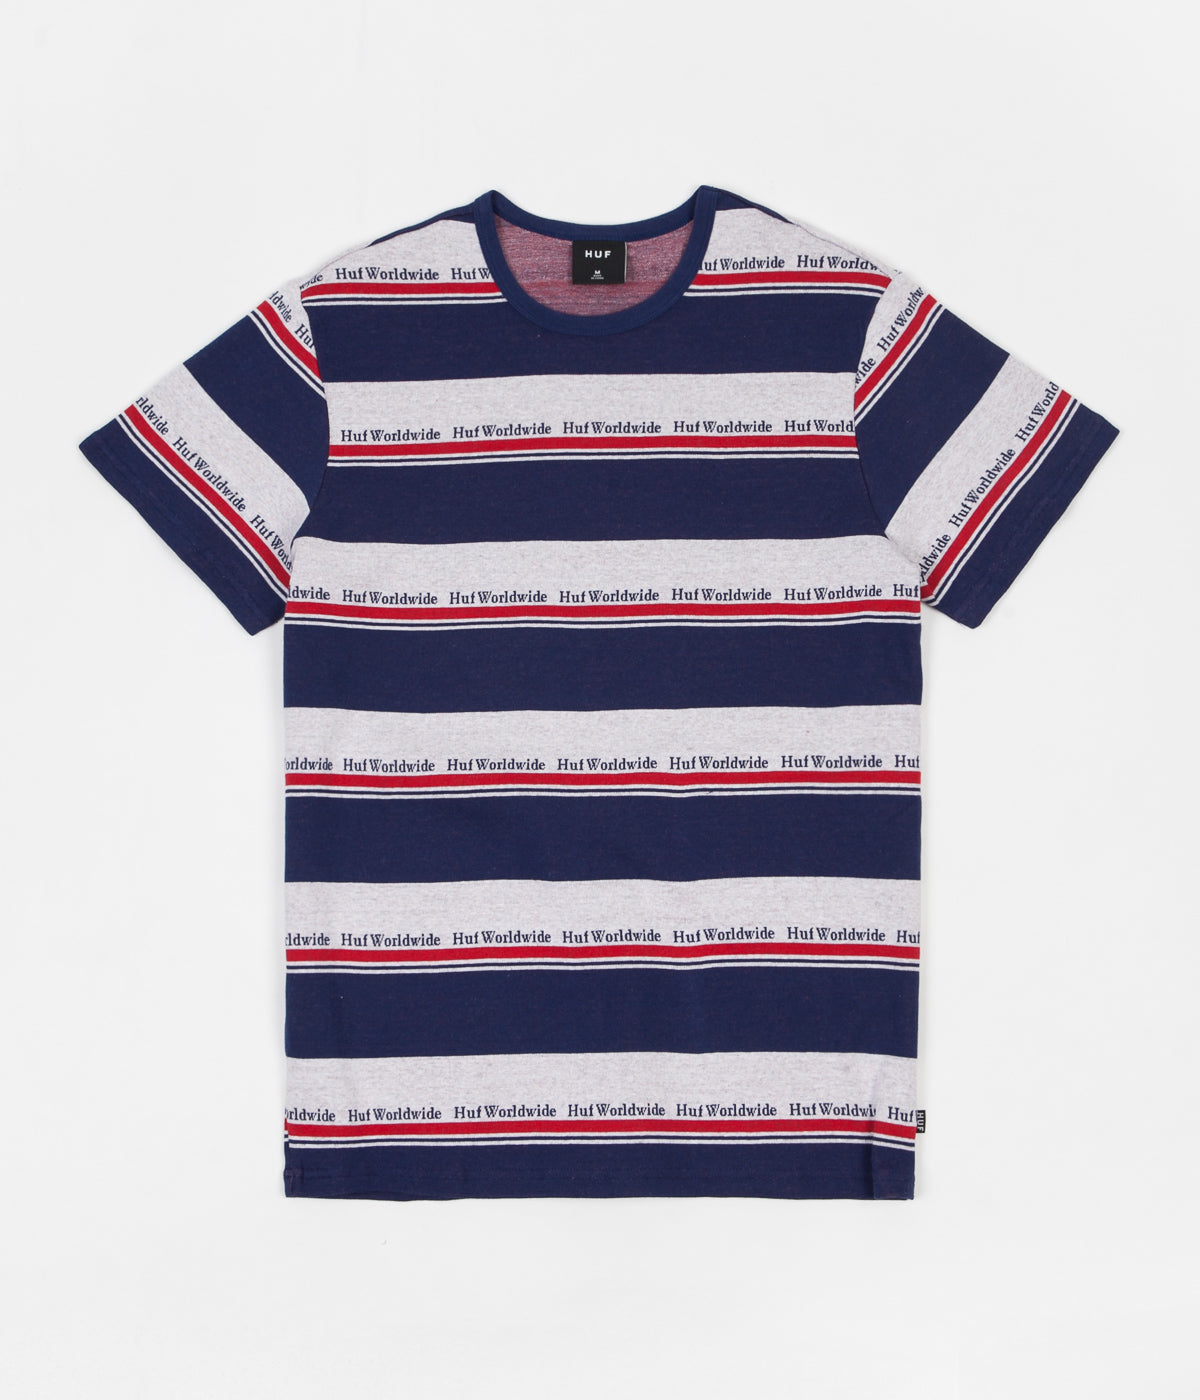 4ad09b6084 HUF Worldwide Stripe Knit T-Shirt - Twilight Blue | Flatspot